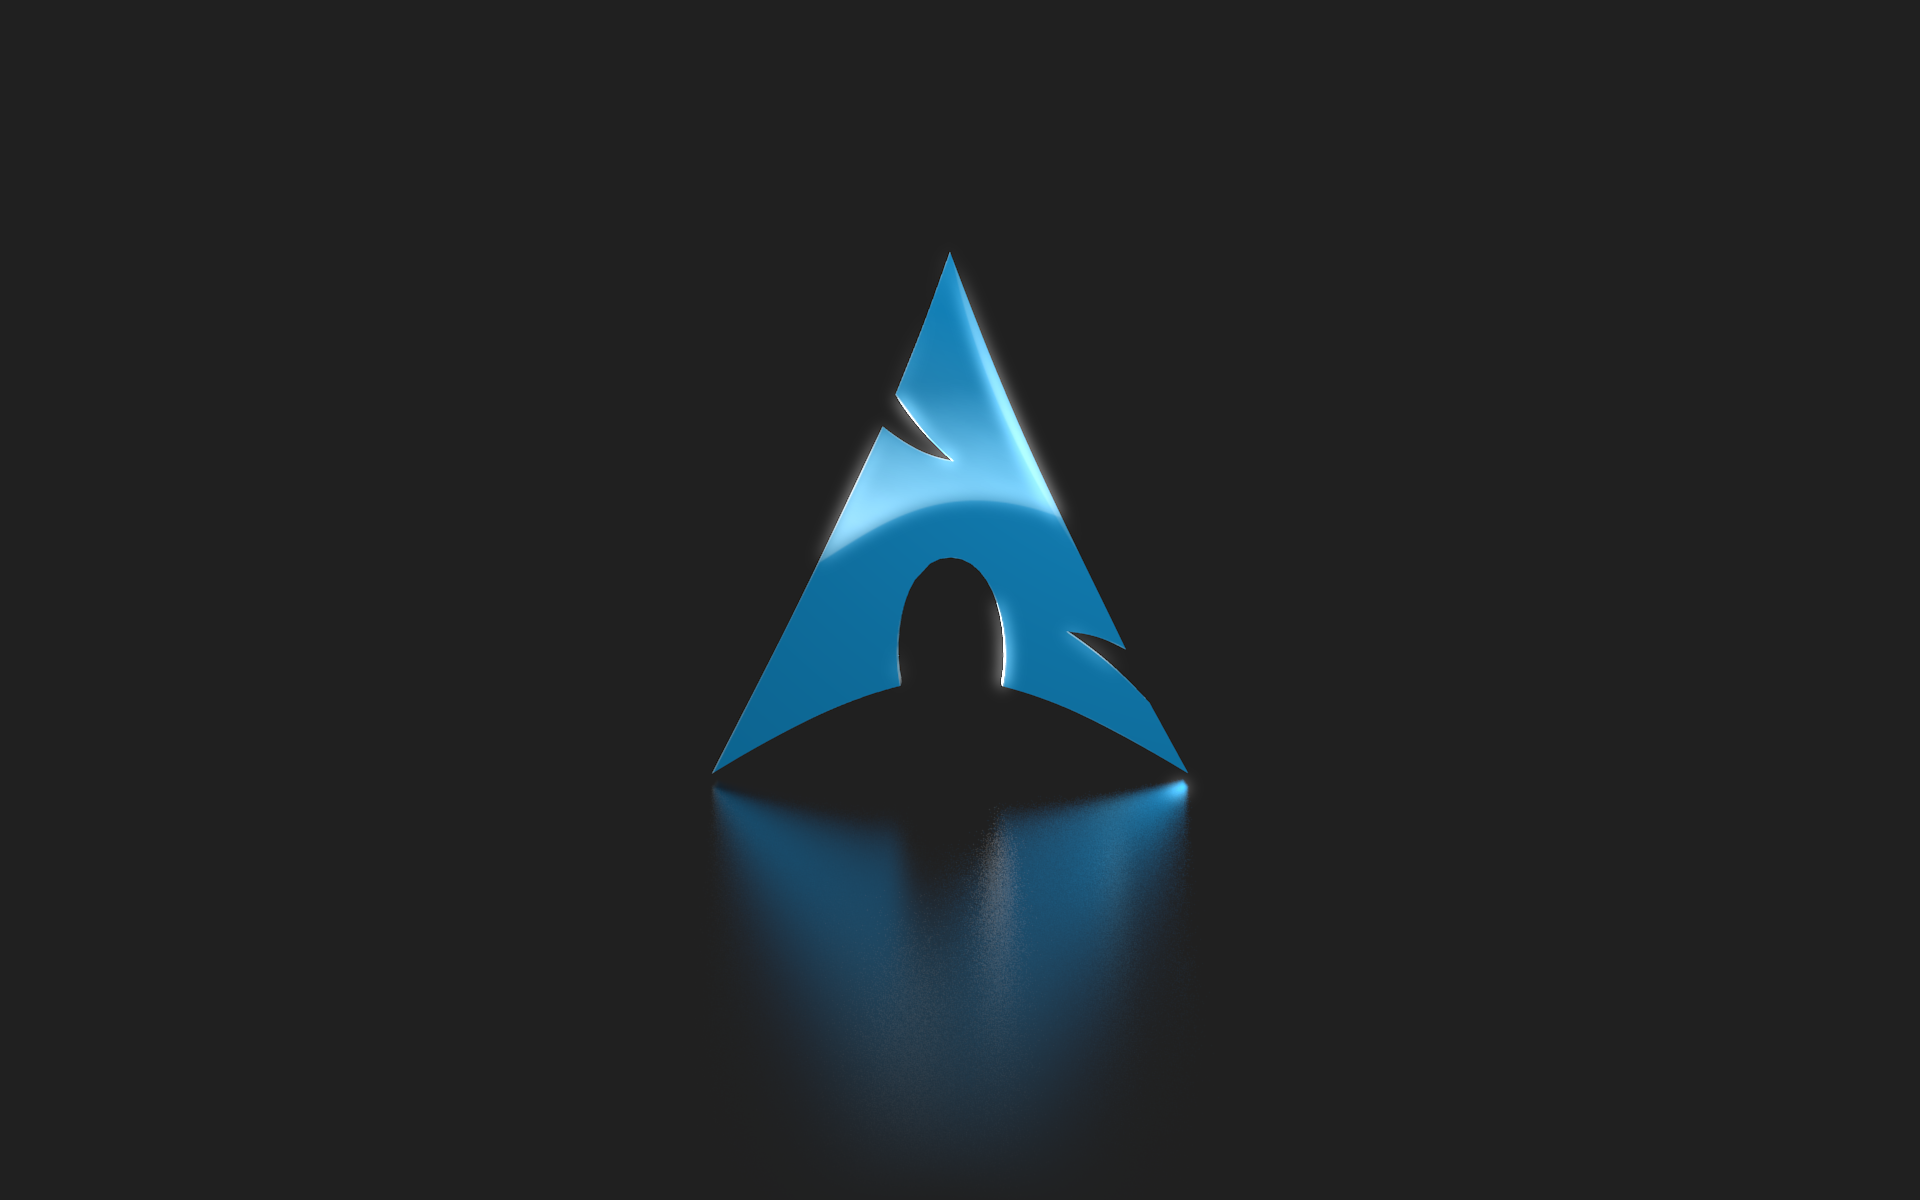 Free download Arch Linux wallpaper 565582 [1920x1200] for your